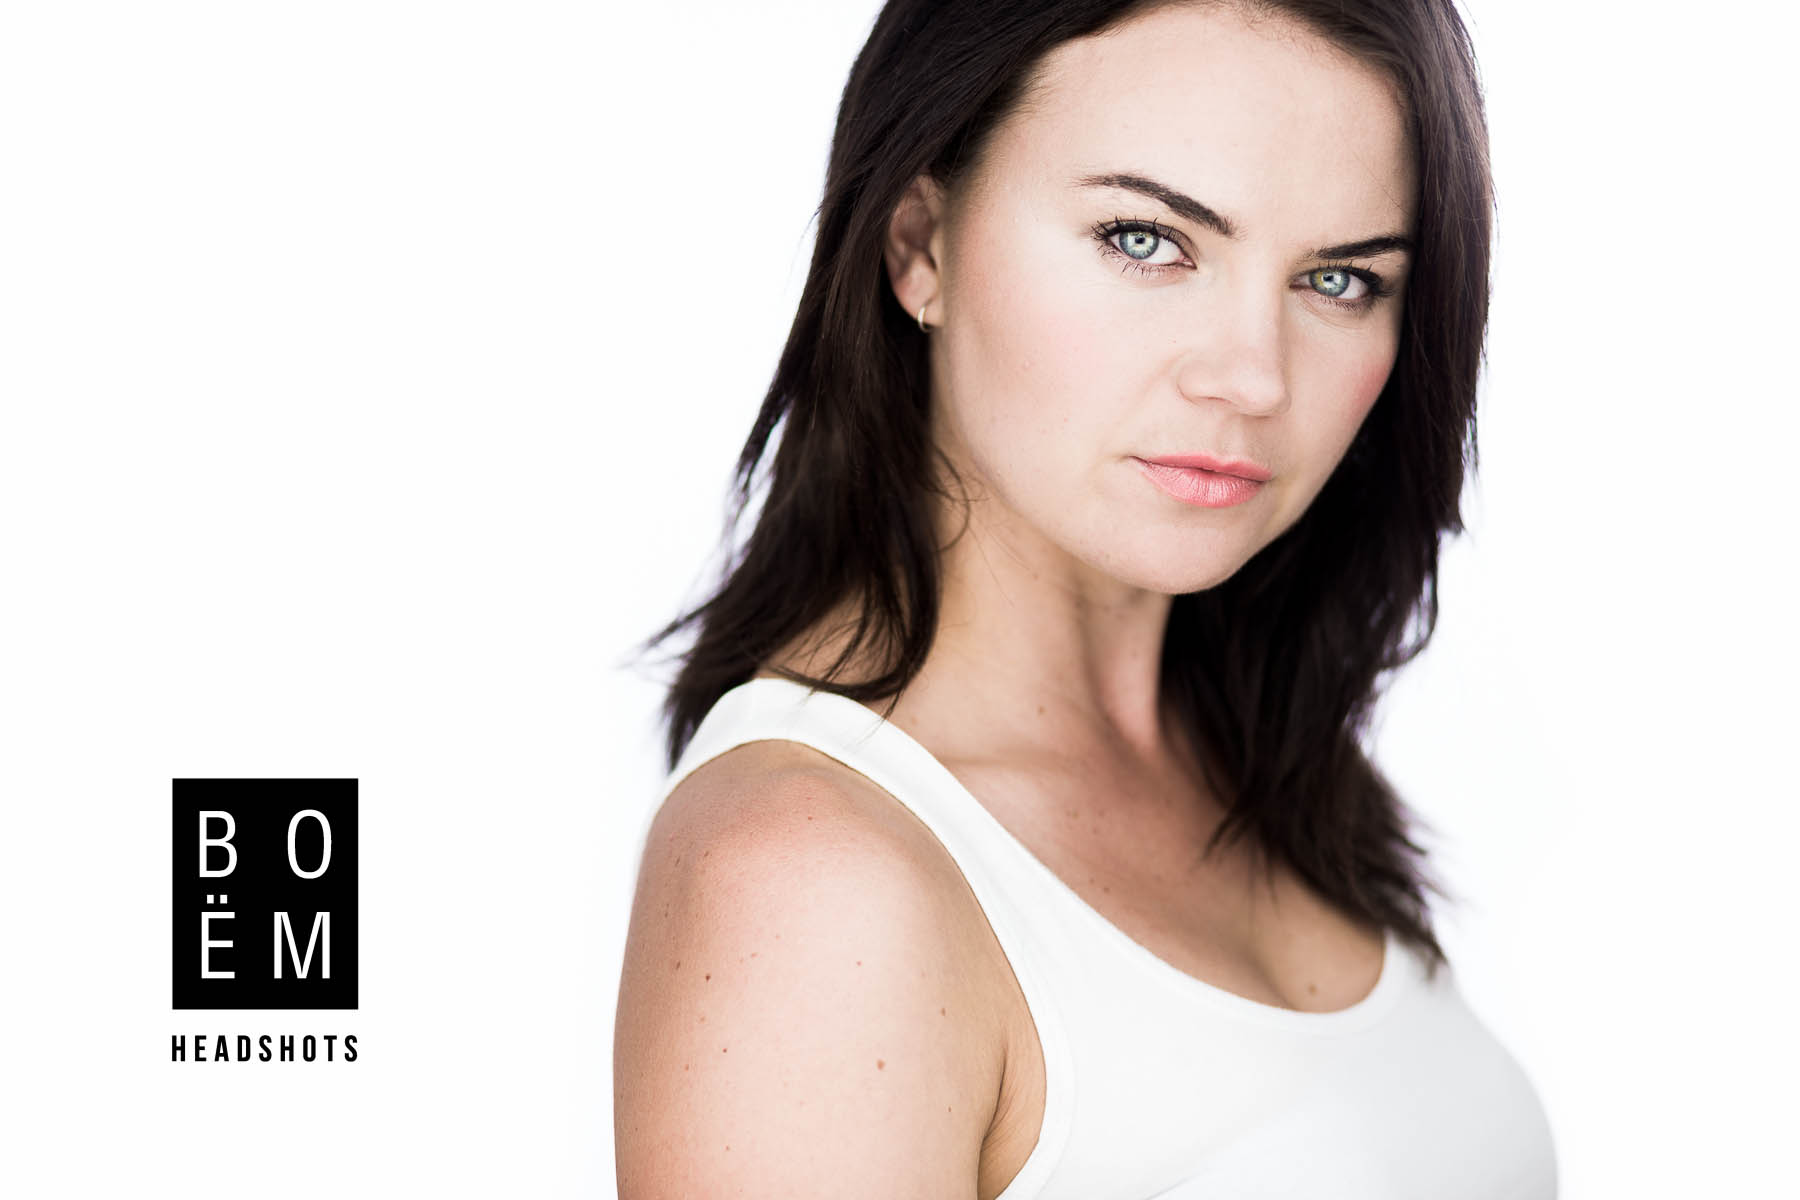 A quick preview of our headshot session with Ella in the studio this week. She's a stunning actress and signer here in Adelaide and we had a blast shooting for her.